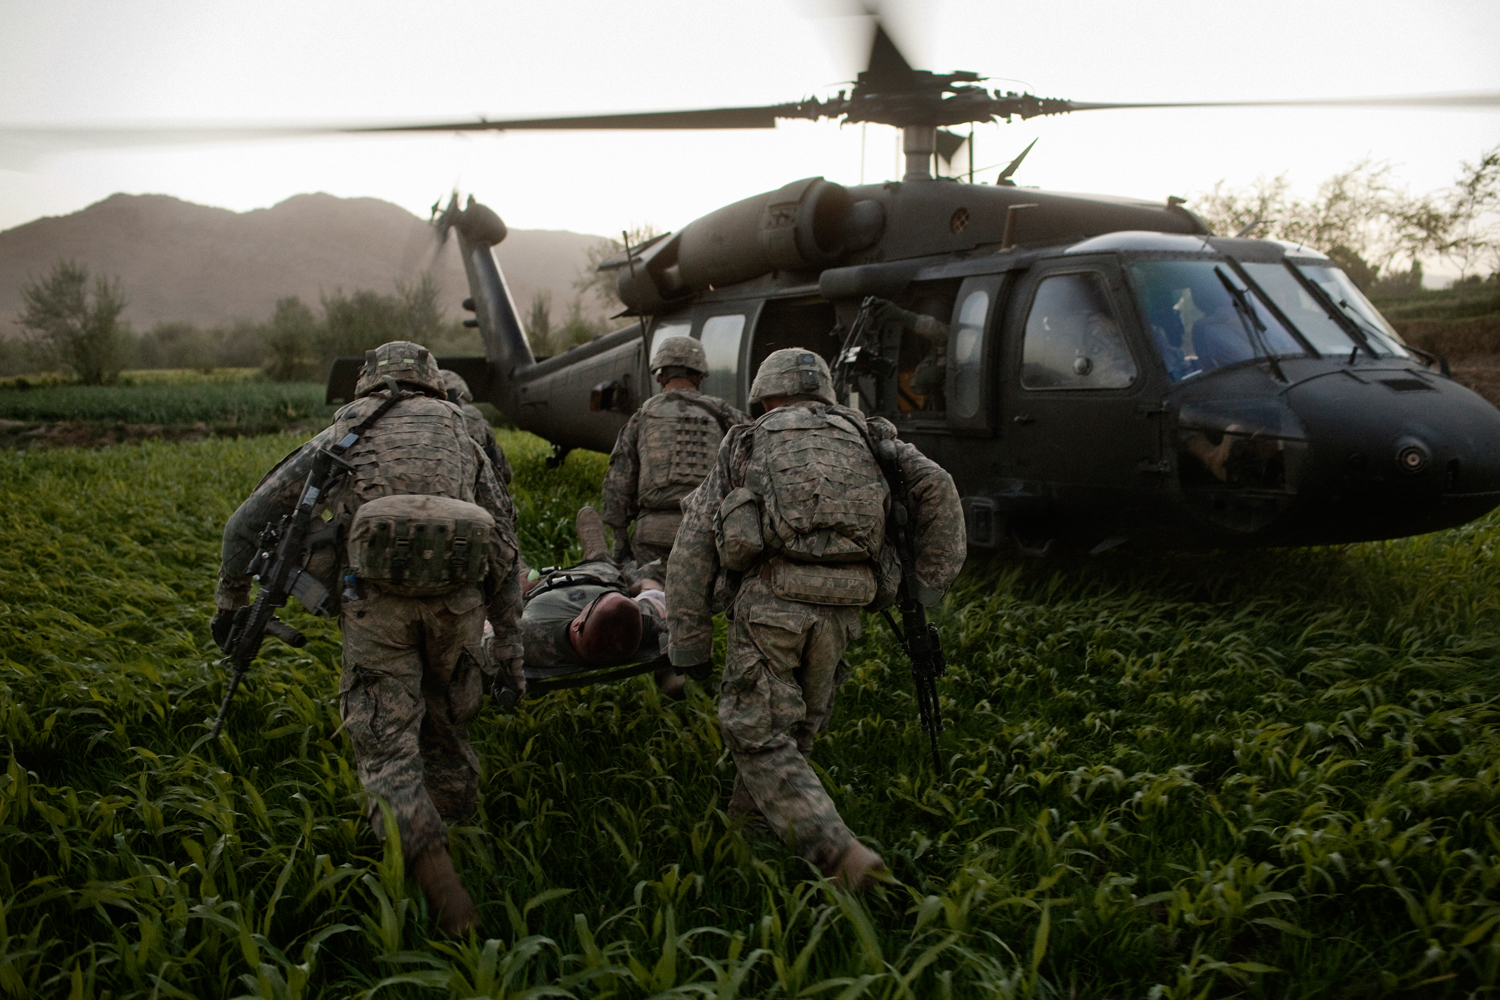 Sergeant Chet Millard is carried on a stretcher to a medical evacuation helicopter after he was injured in an improvised explosive device attack on his vehicle in the Tangi Valley, Wardak Province,Afghanistan.